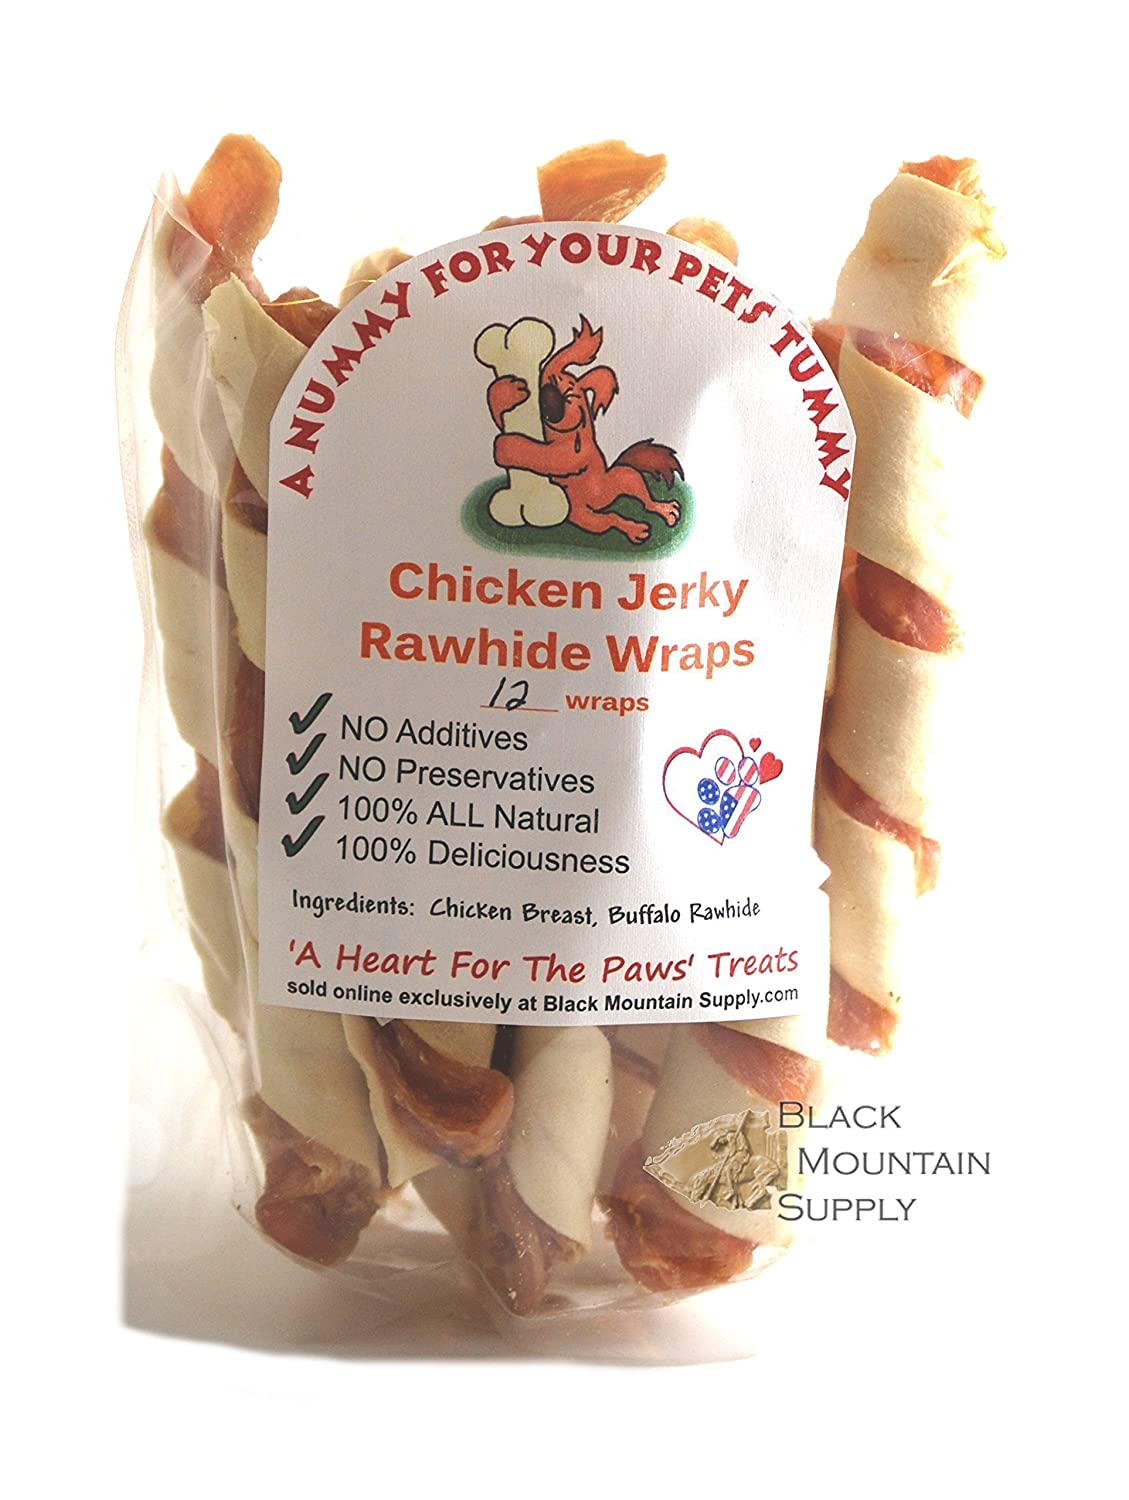 Rawhide Wrapped Chicken